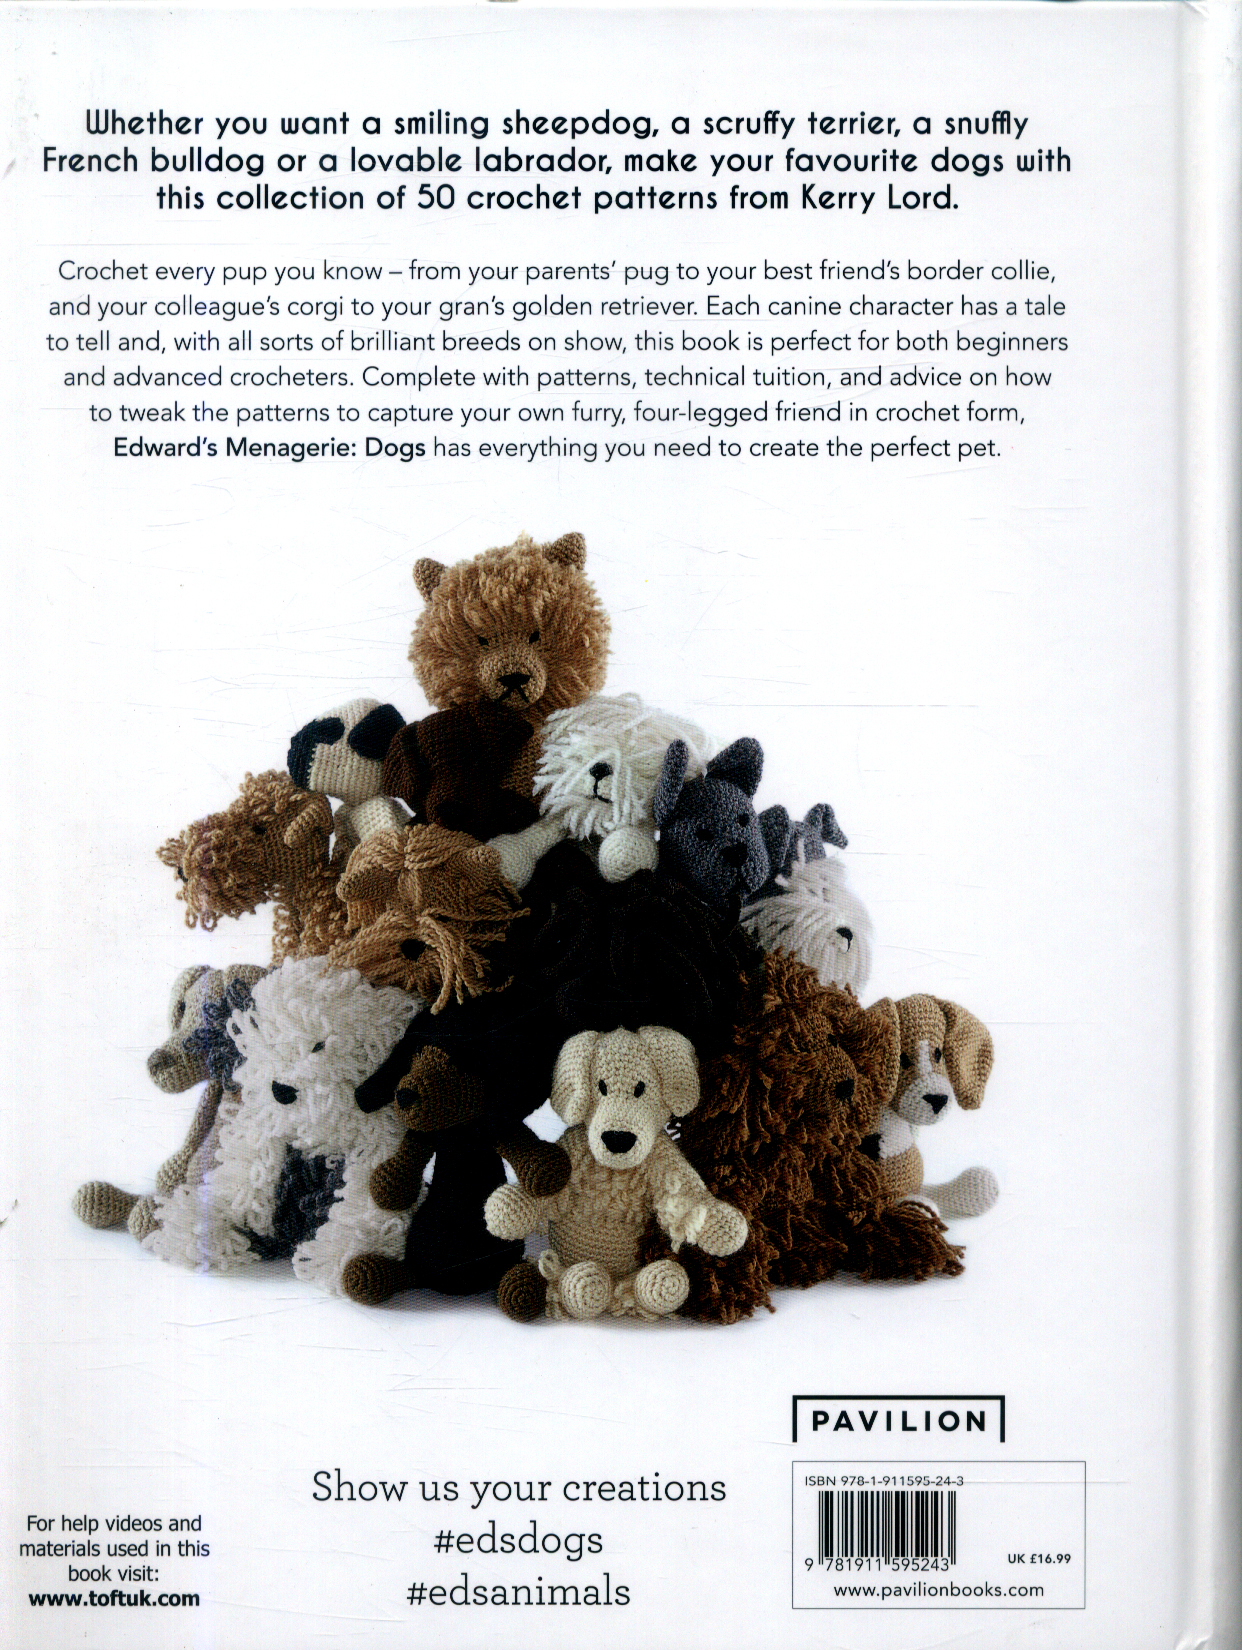 Edwards Menagerie Dogs 50 Canine Crochet Patterns By Lord Kerry